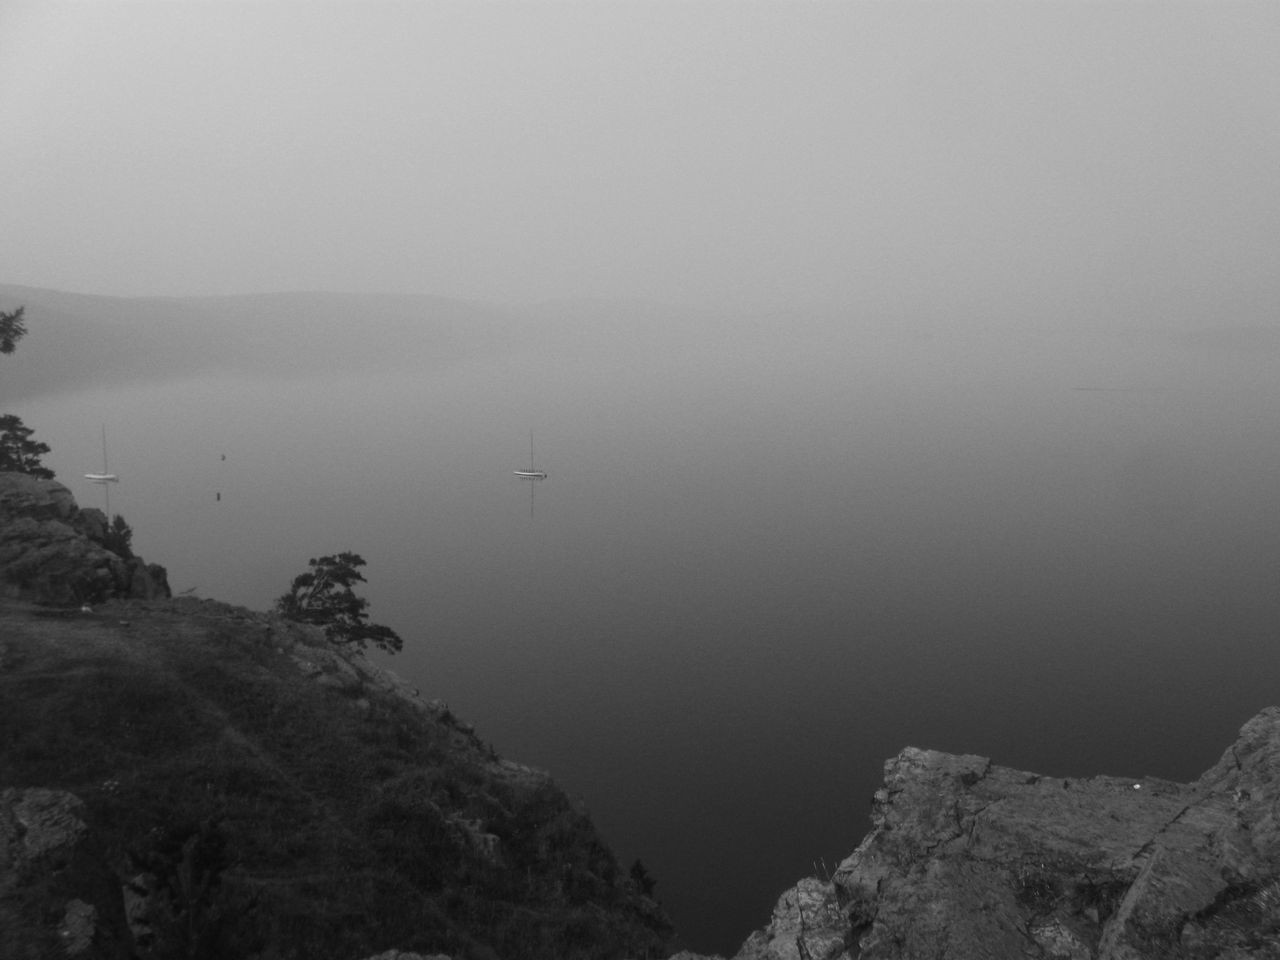 nature, fog, mountain, scenics, beauty in nature, tranquility, tranquil scene, no people, outdoors, day, water, landscape, sea, sky